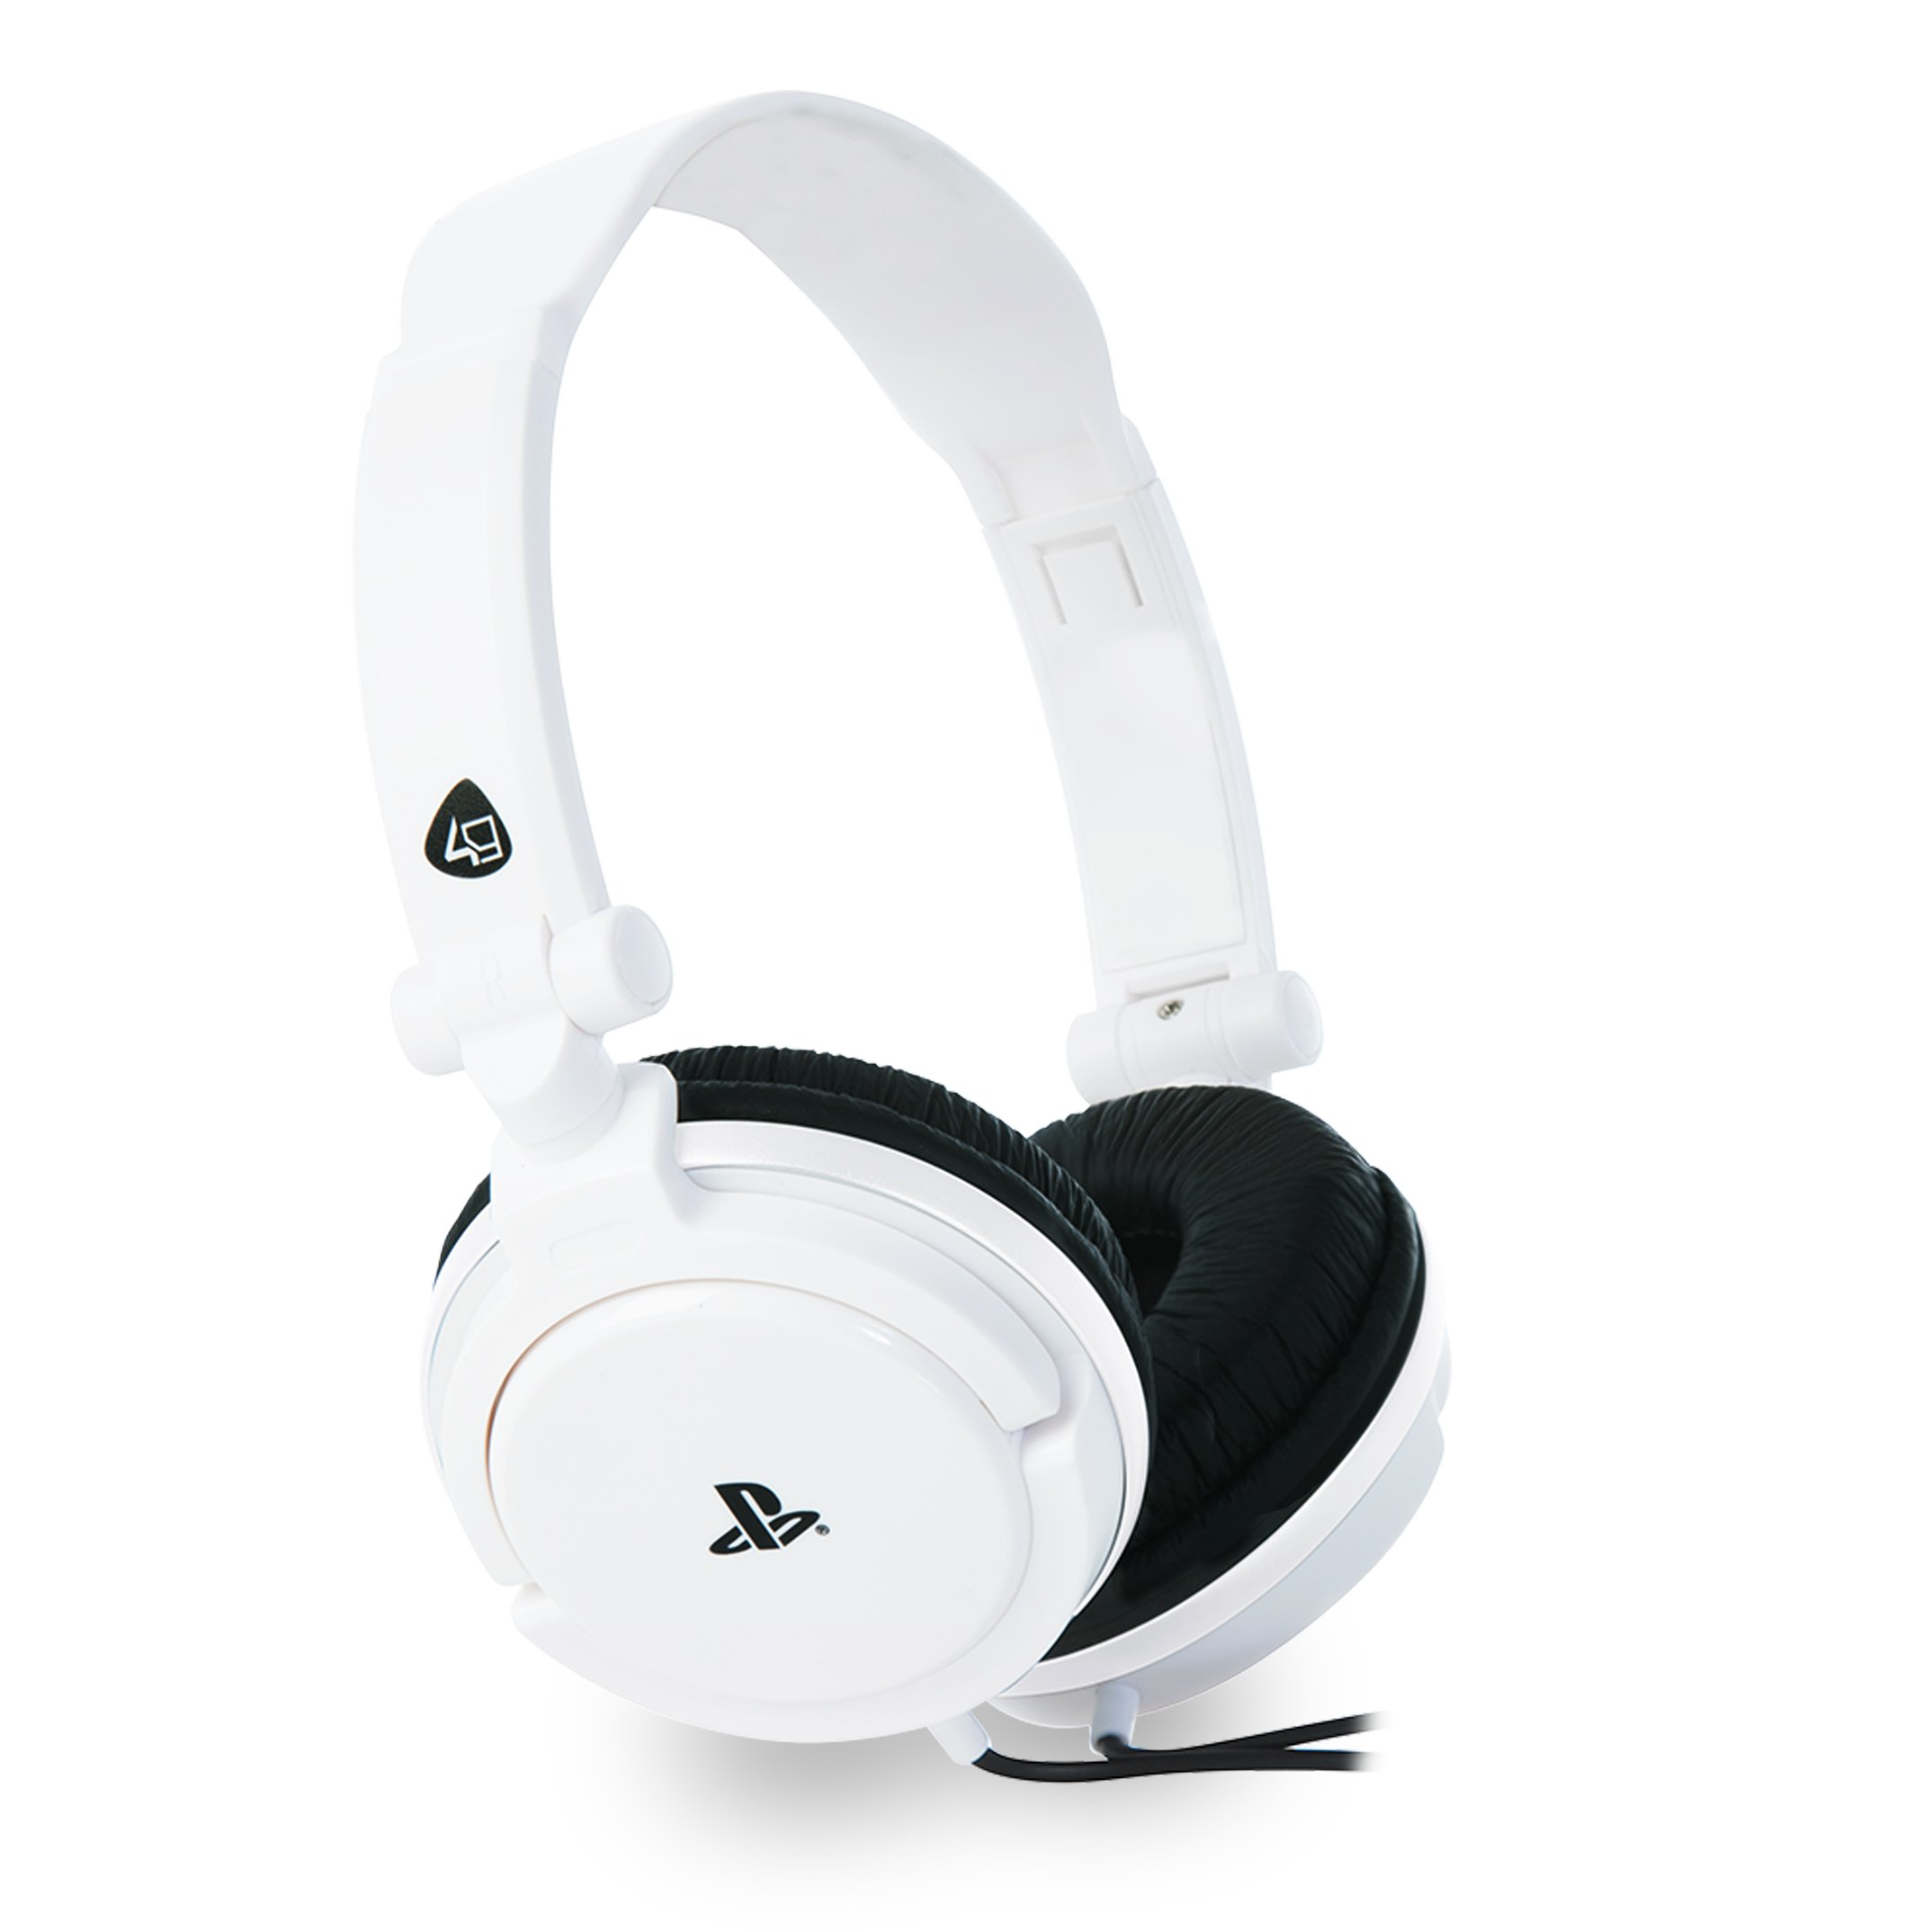 Licensed Ps4 4-10 Pro Stereo Gaming Headset White (ps4)